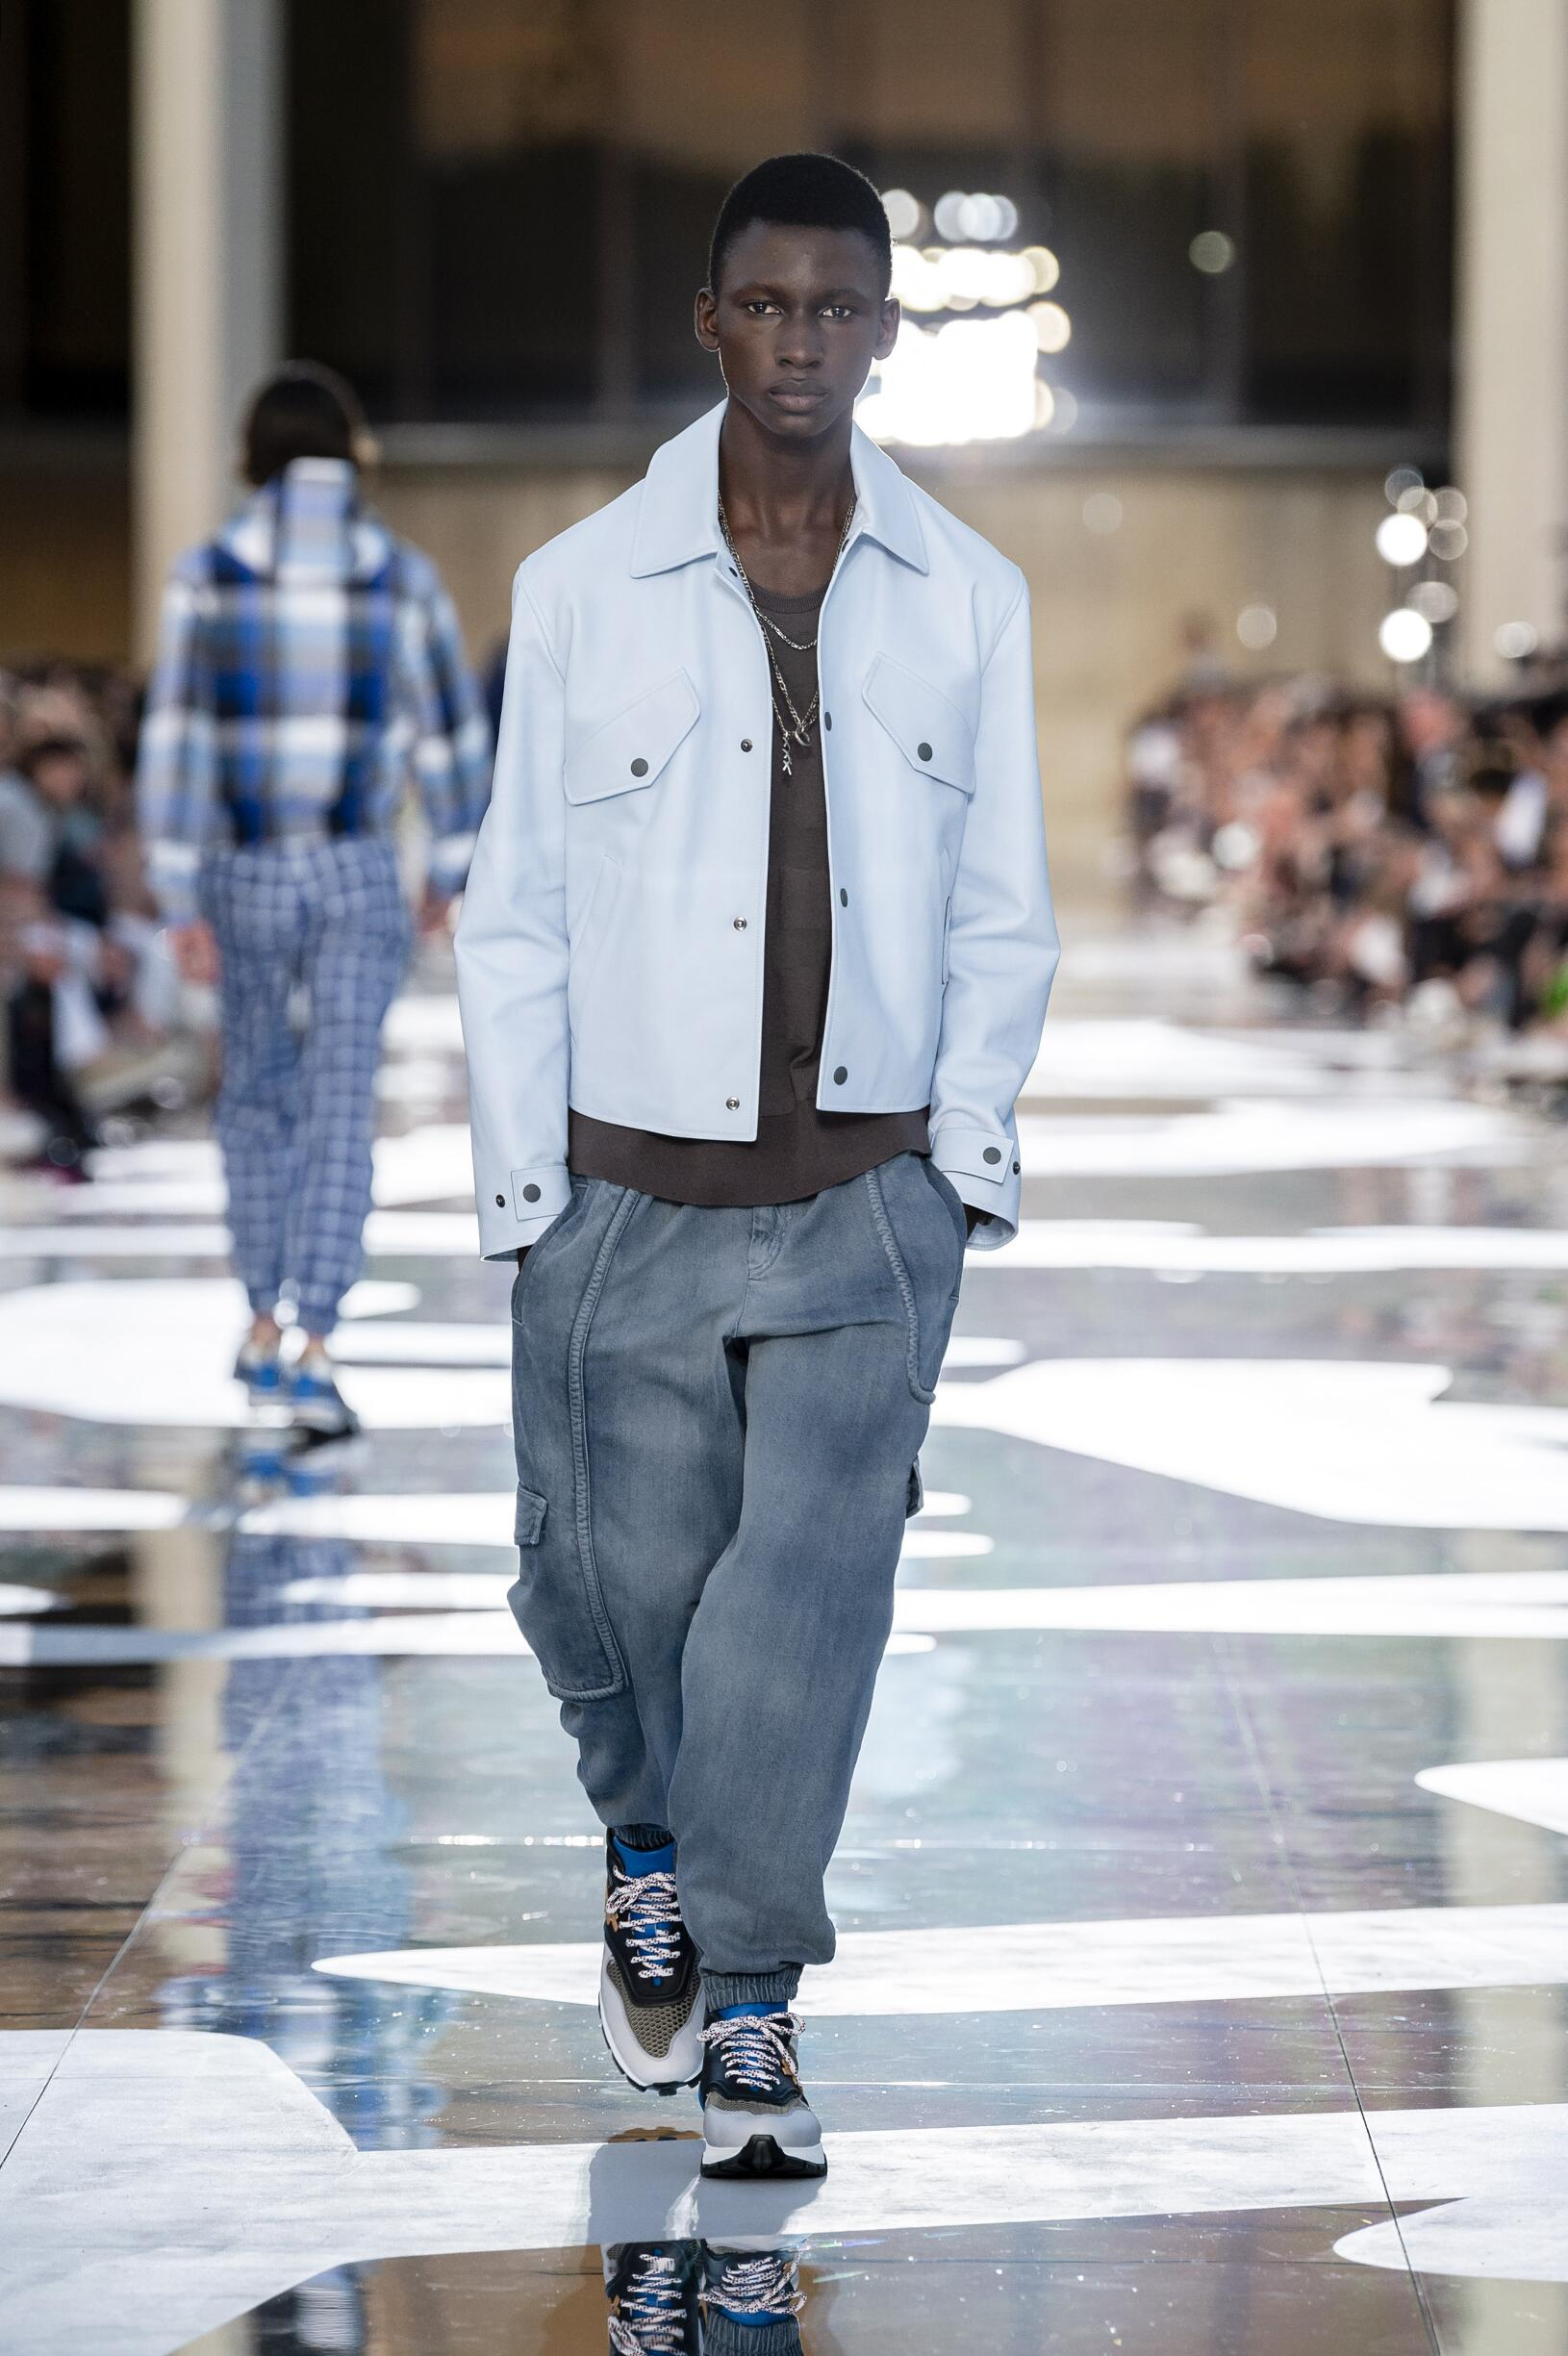 Catwalk Ermenegildo Zegna Couture Man Fashion Show Summer 2019